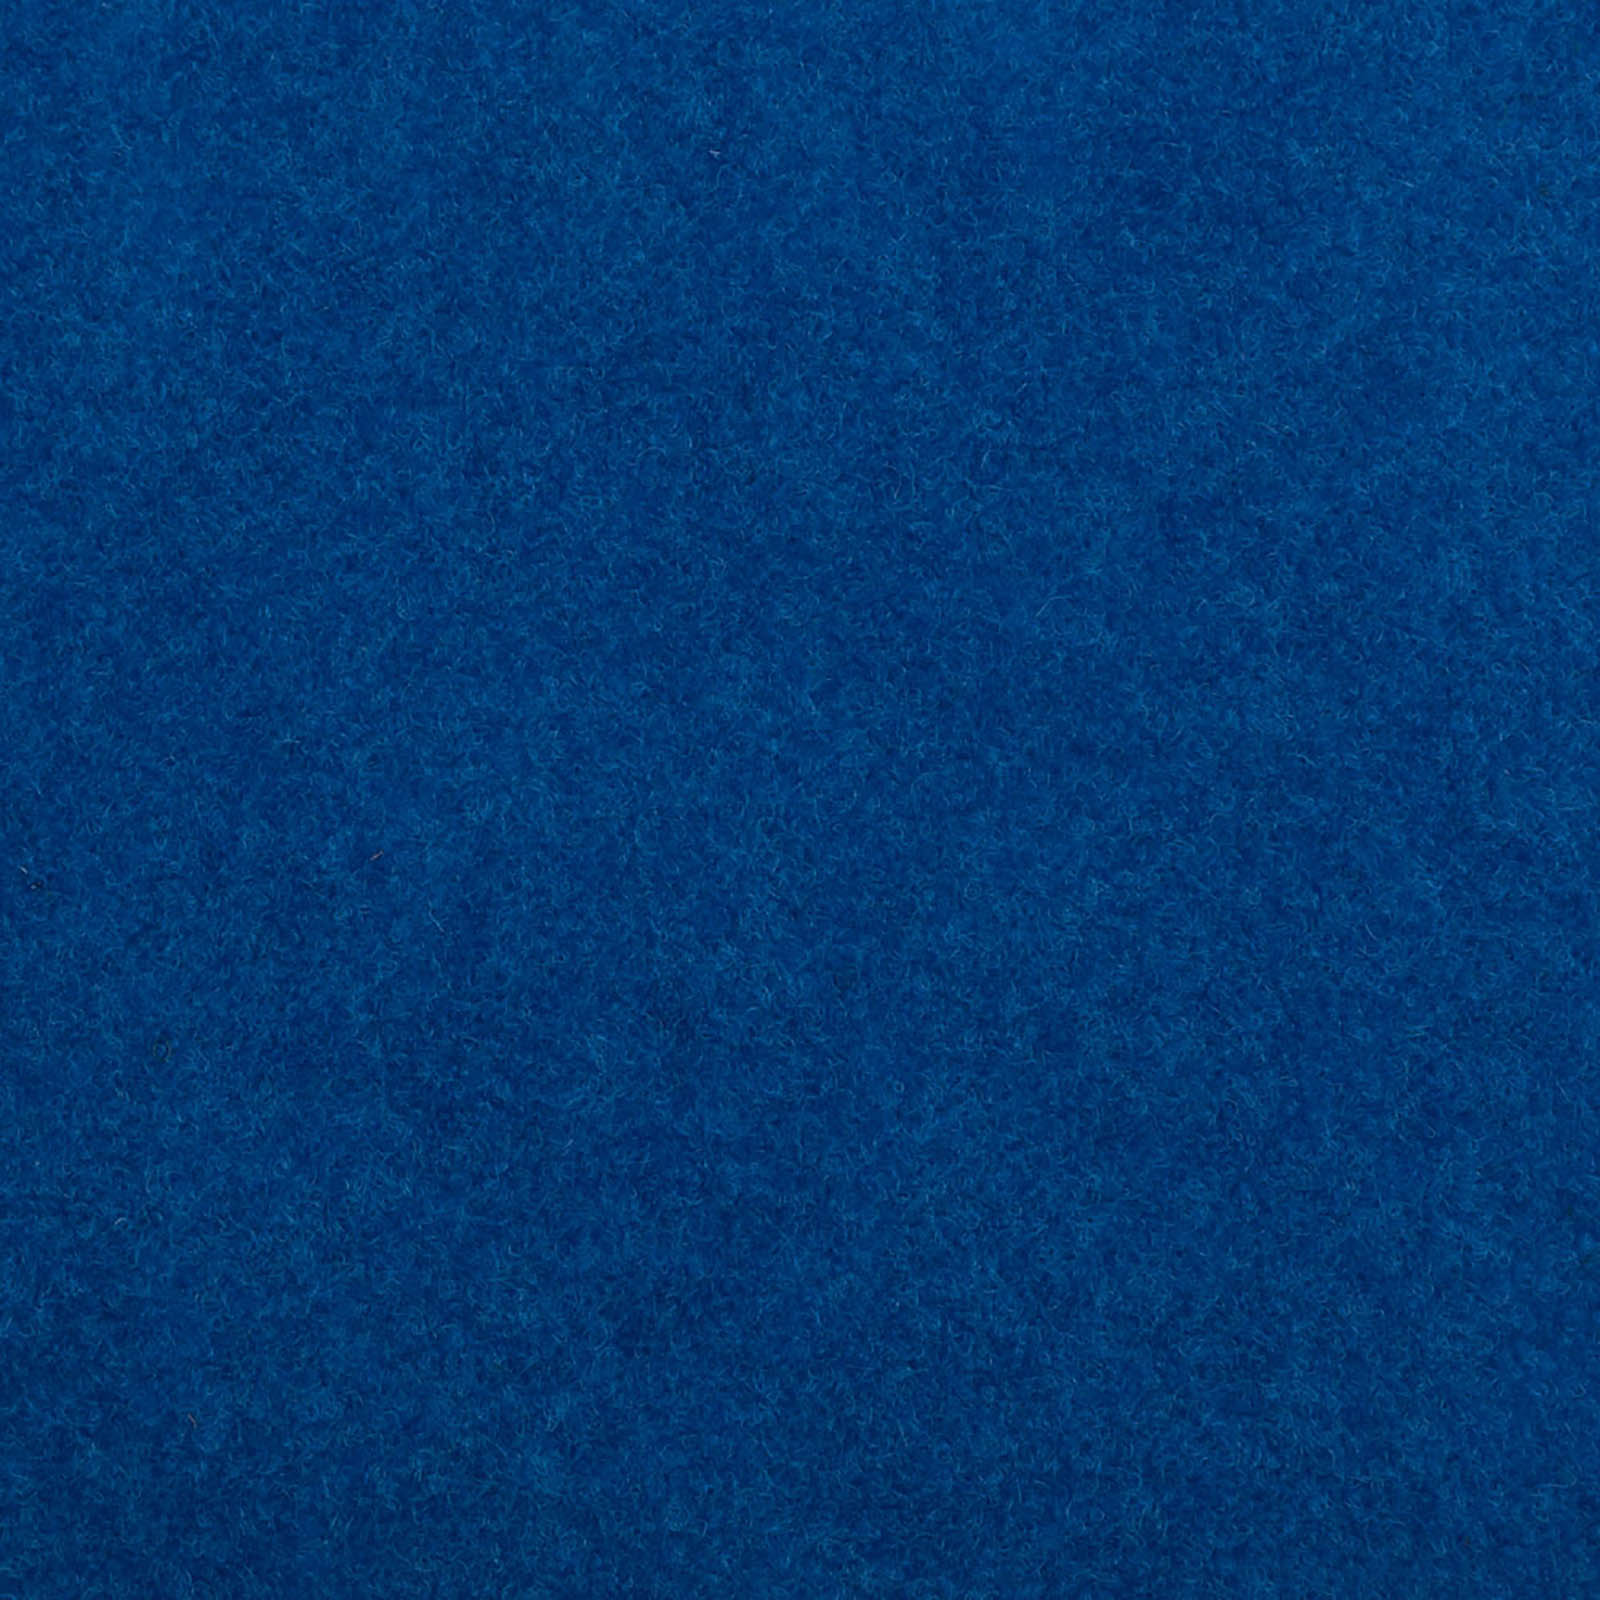 Blue Outdoor Carpet - Far